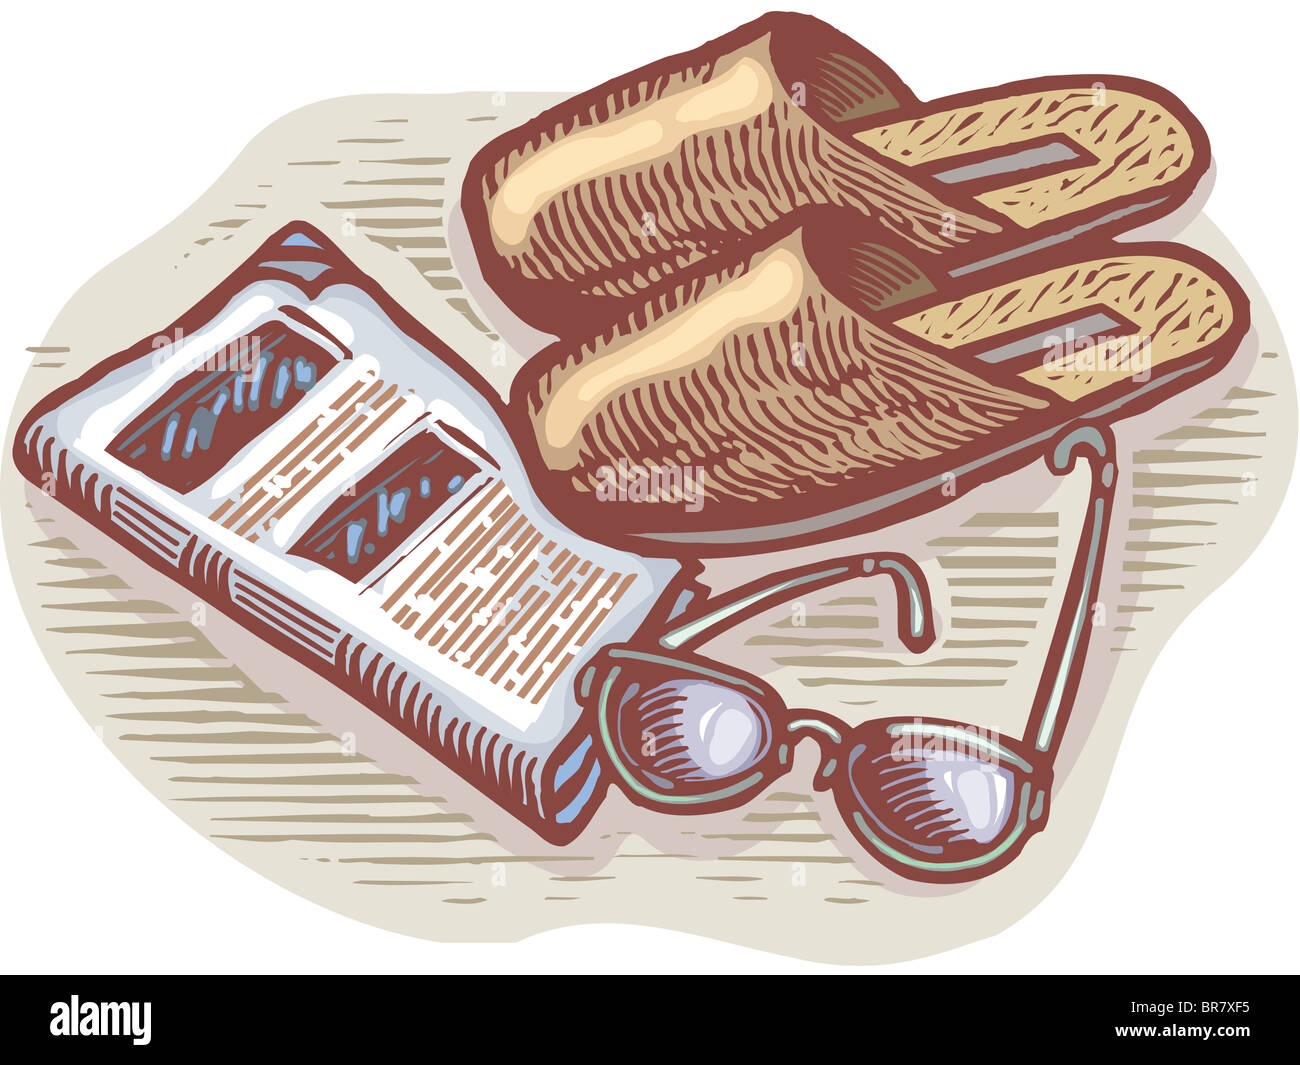 An illustration of slippers, glasses, and newspaper - Stock Image